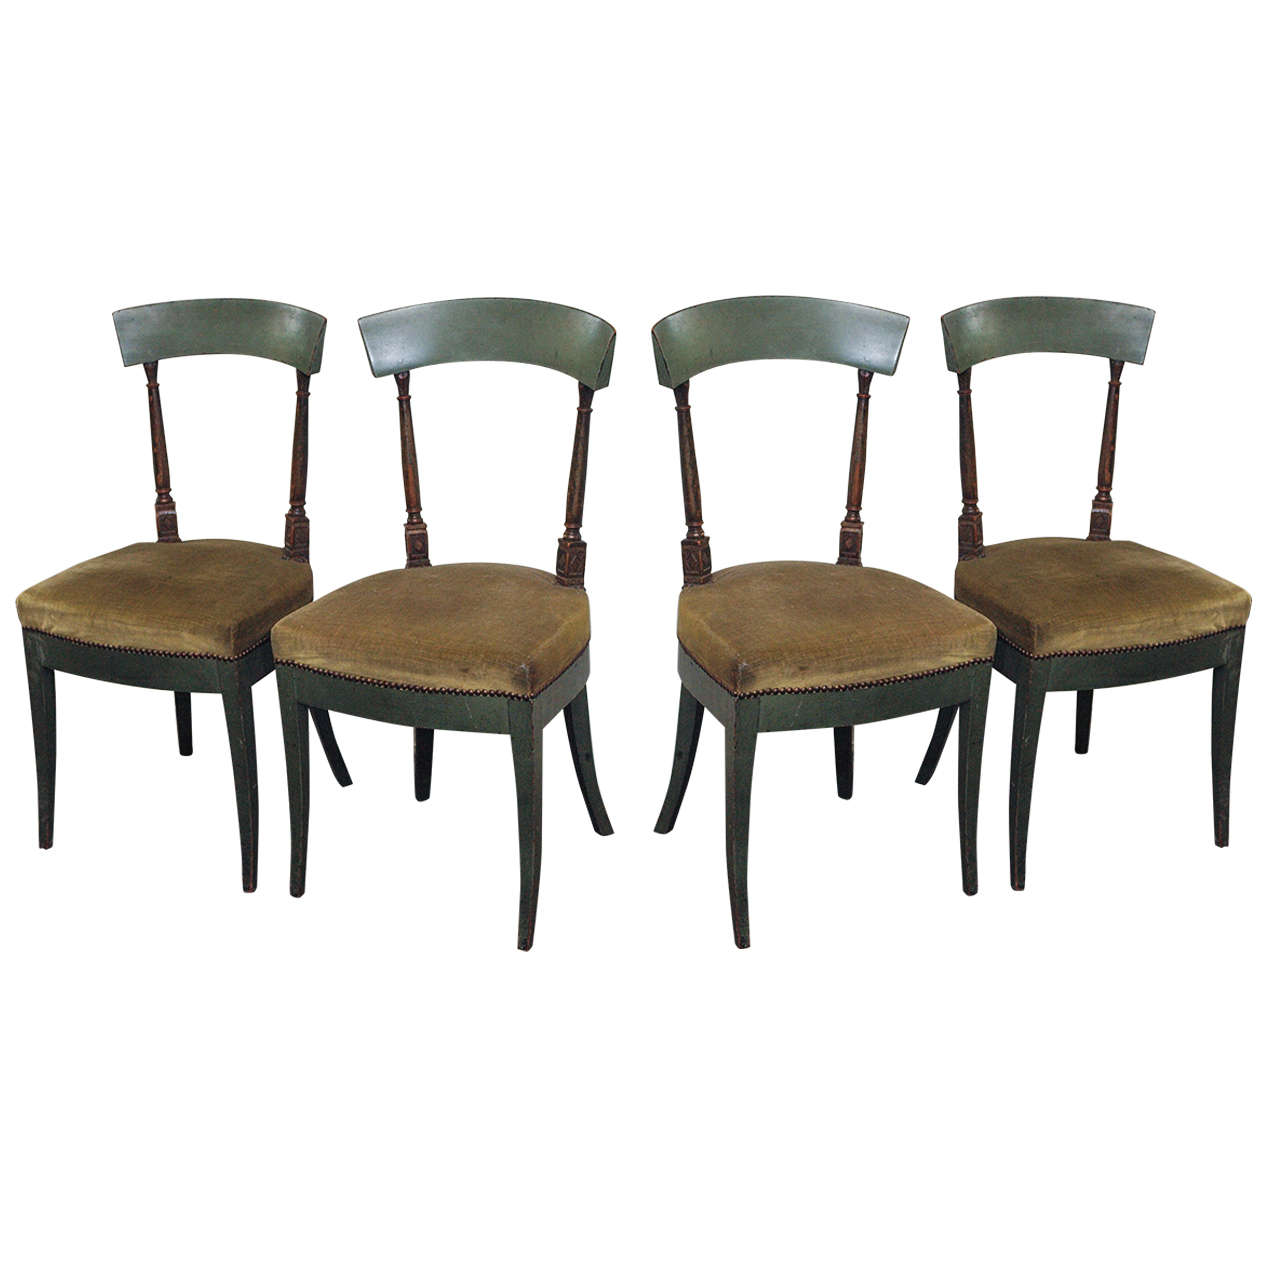 painted wood dining chairs upholstered seats nailheads at 1stdibs